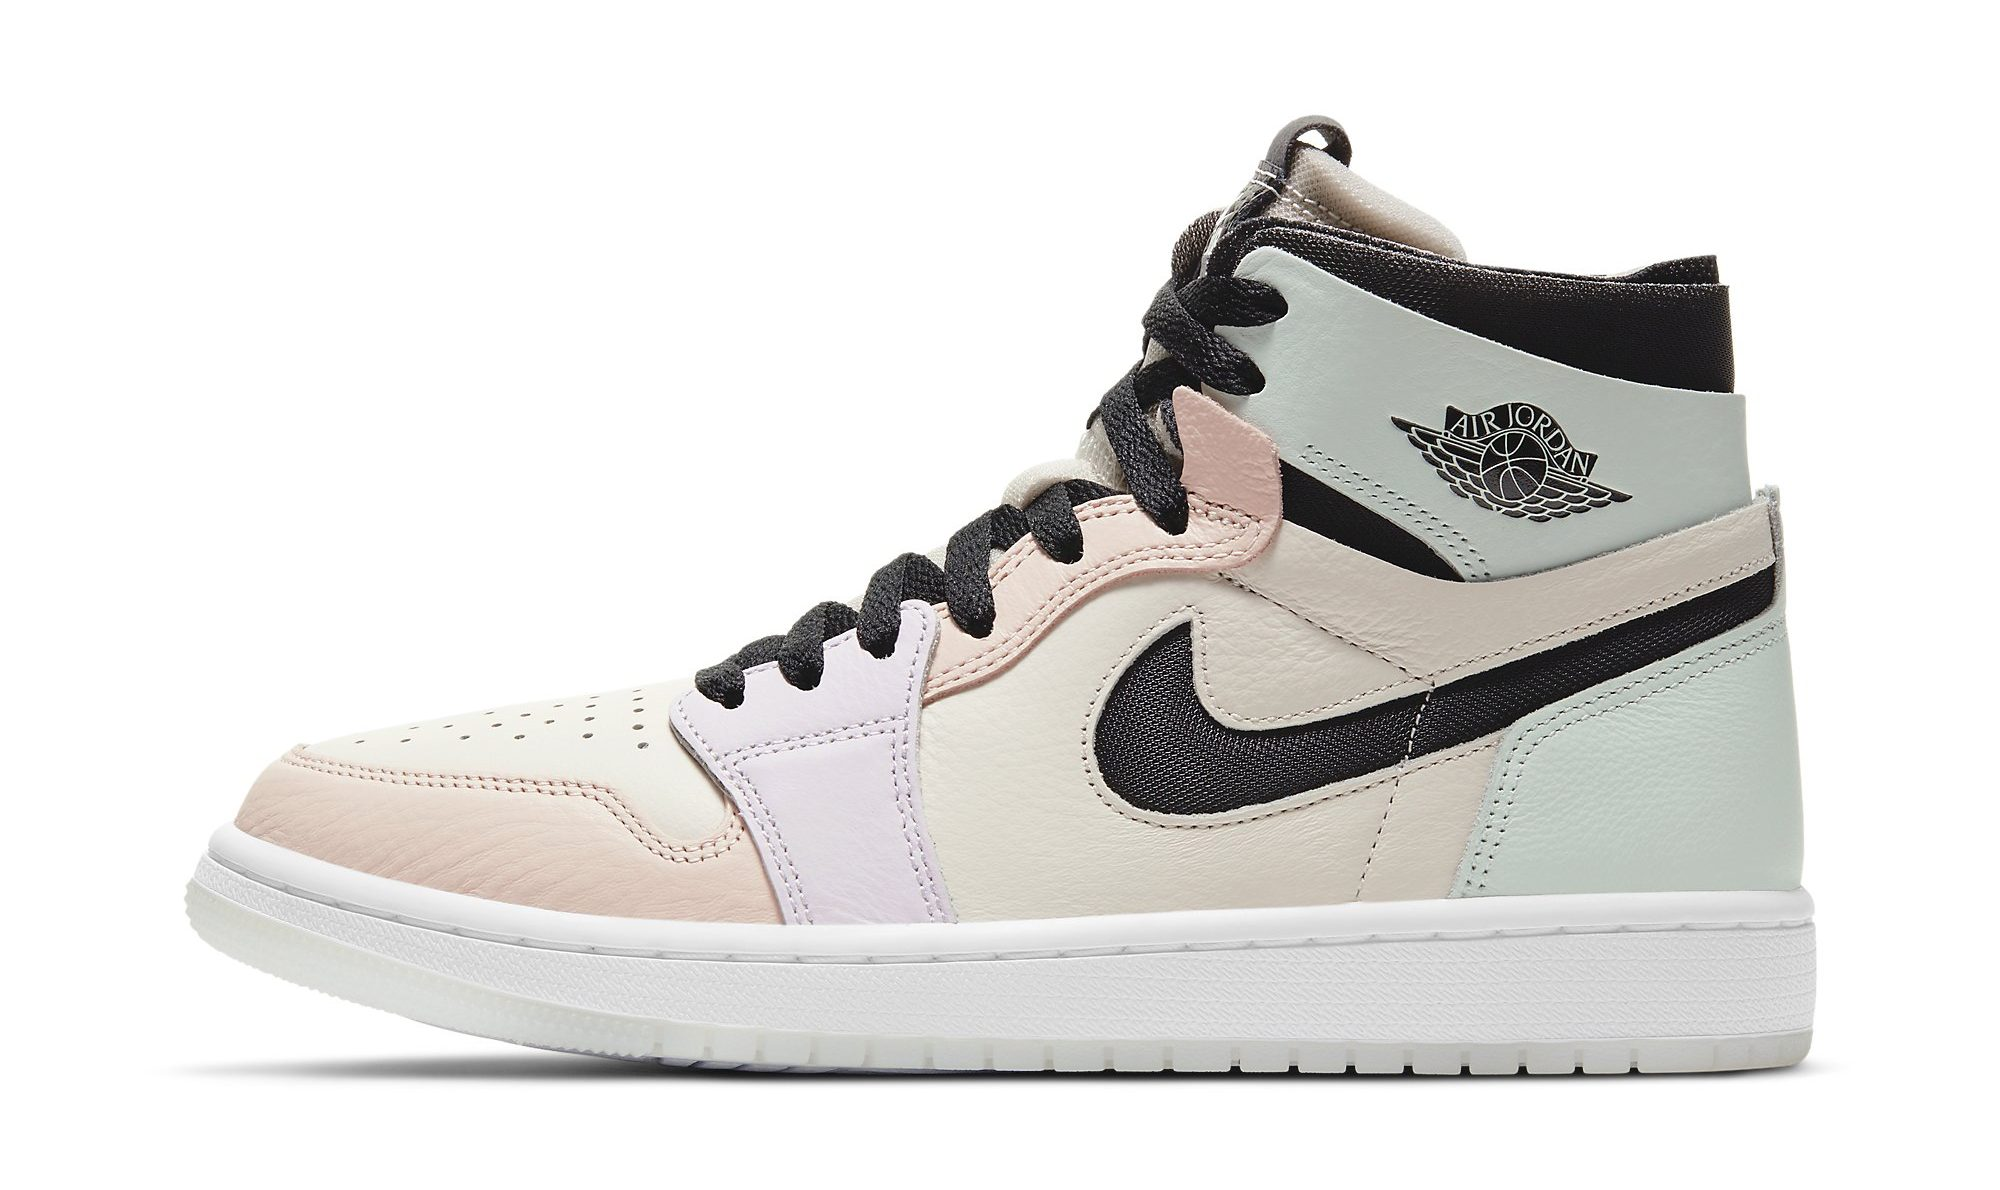 Air Jordan 1 High Zoom 'Easter' Release Info: How to Buy a Pair ...